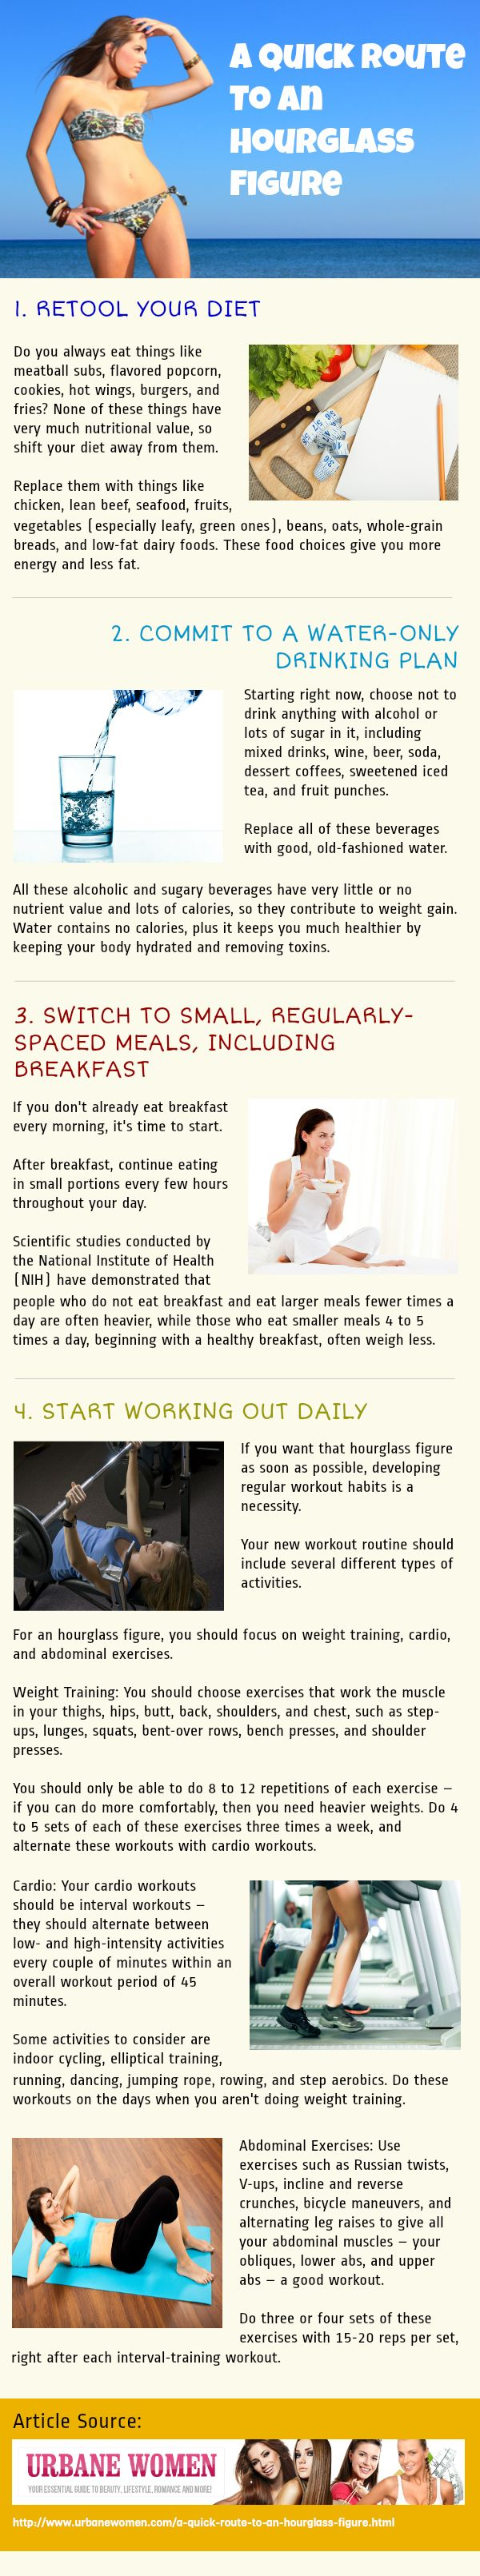 A Quick Route To An Hourglass Figure [Infographic]